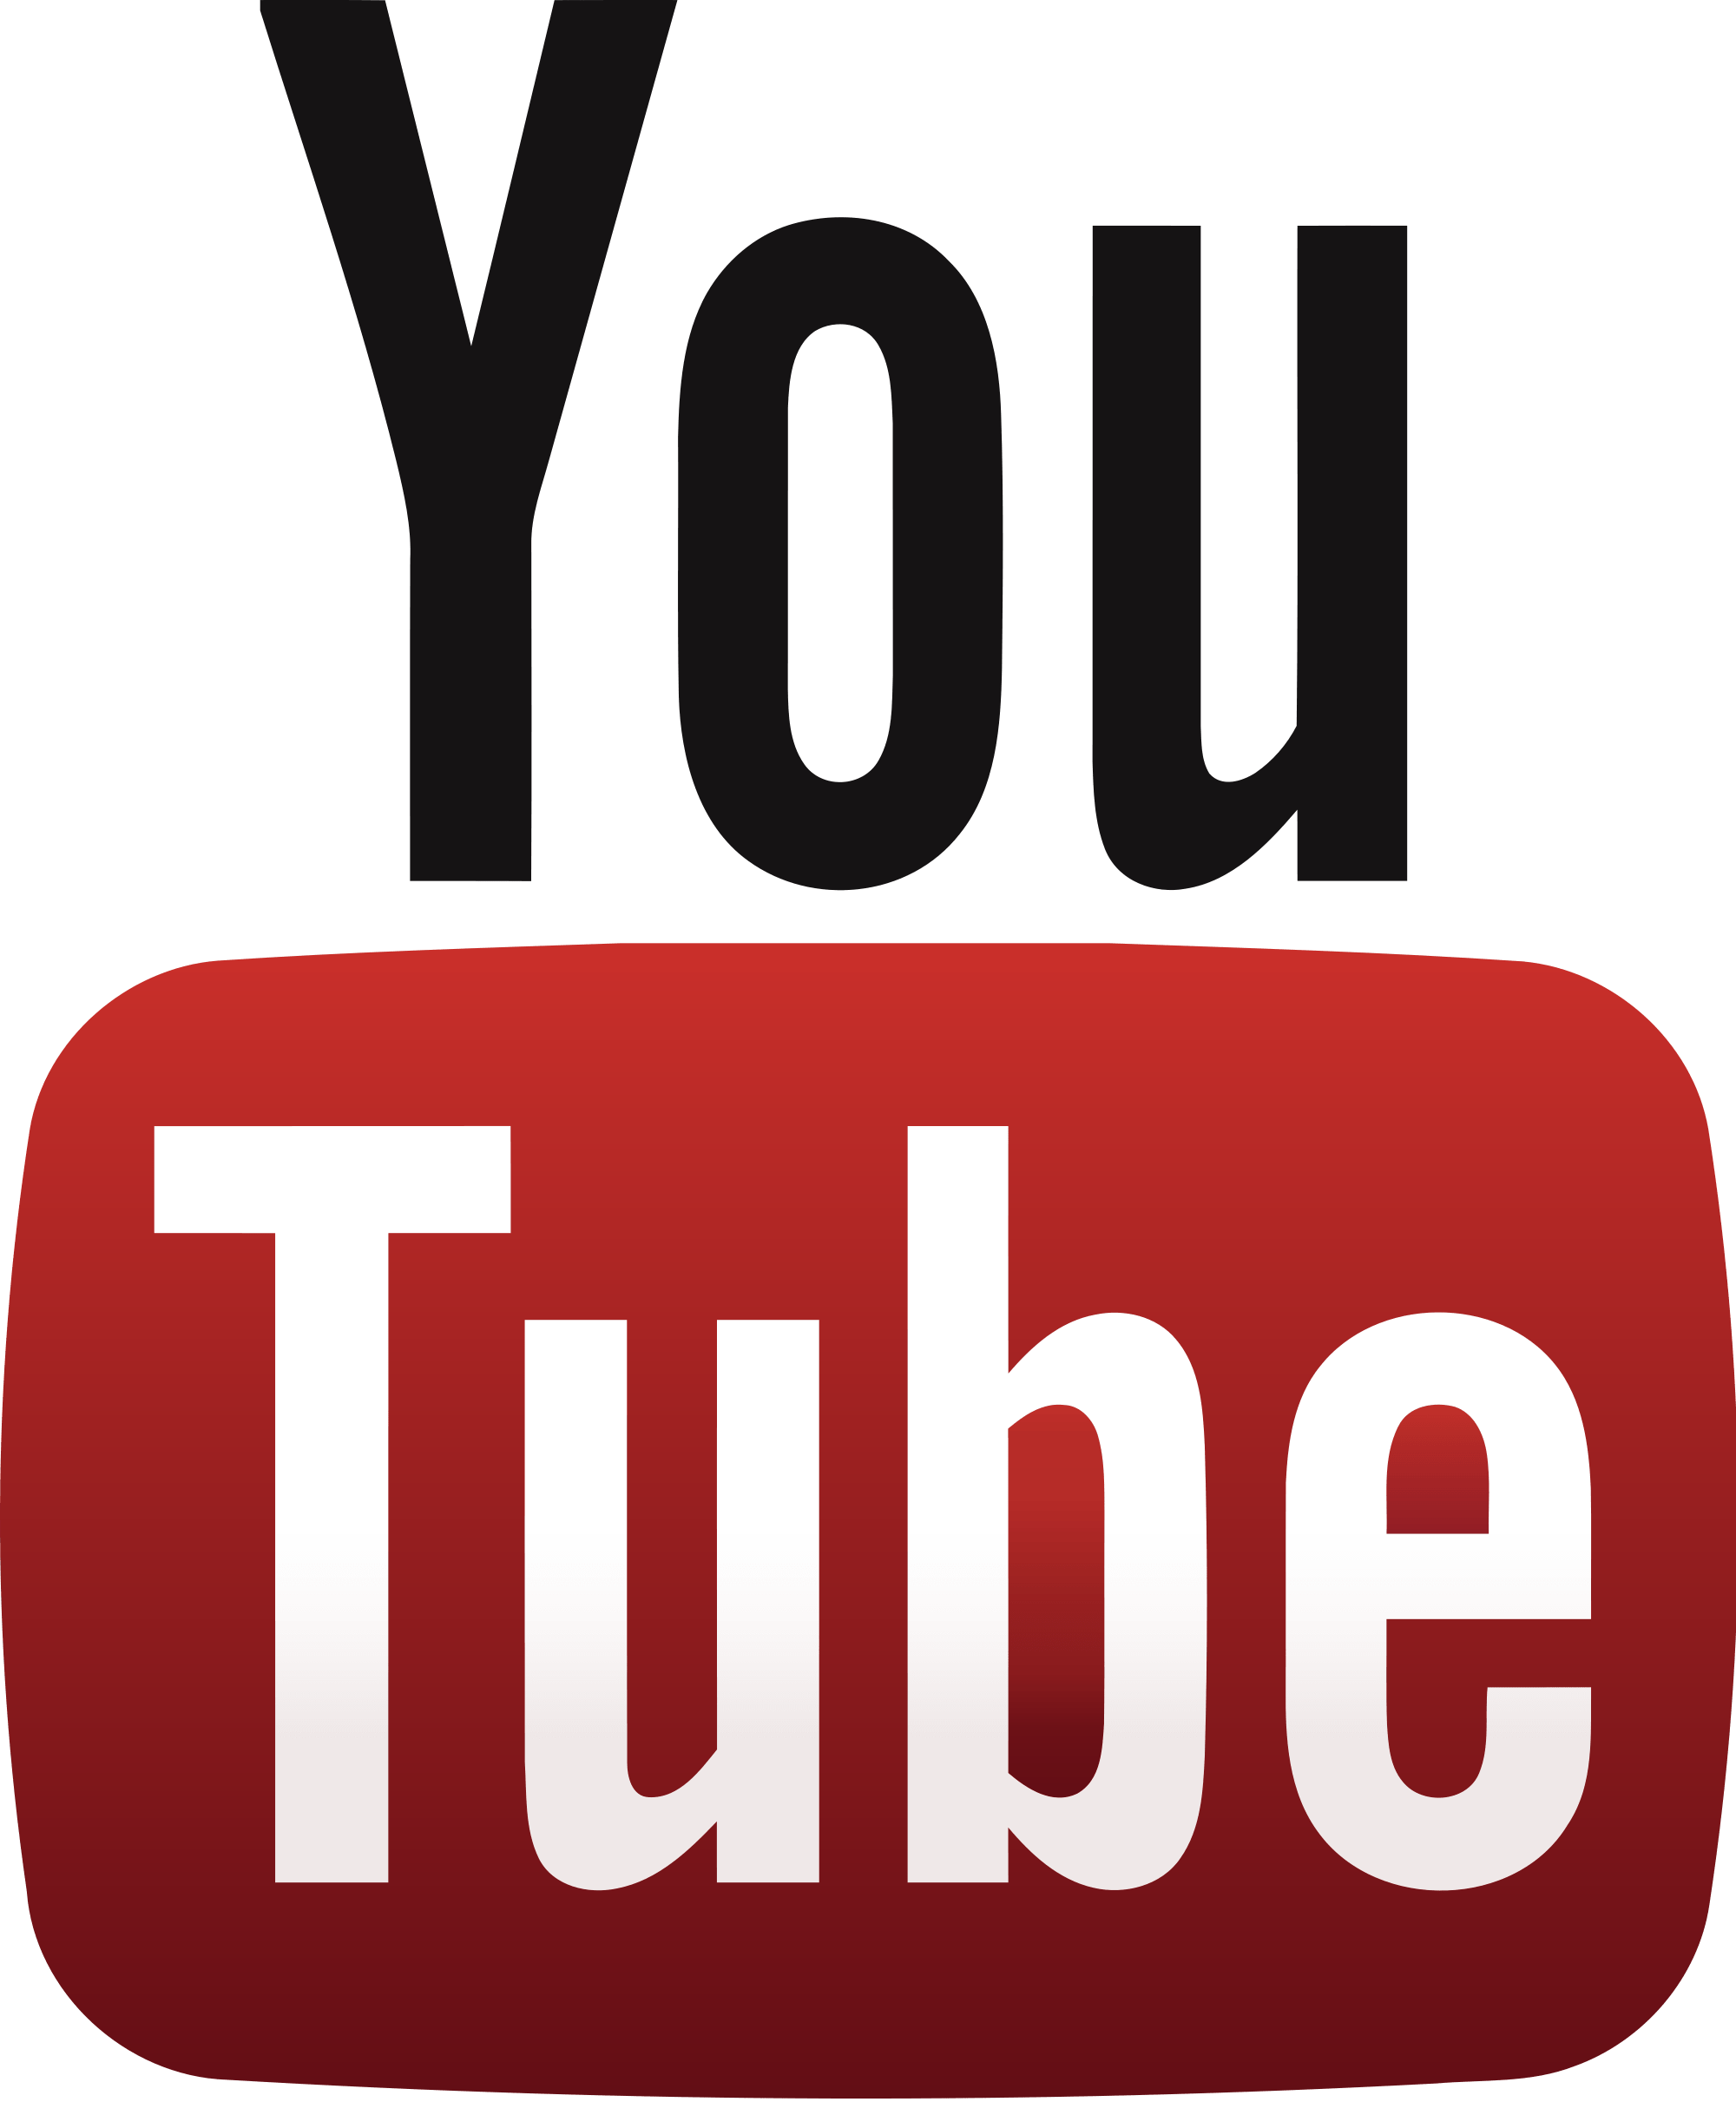 YouTube Logo - Youtube Logo Transparent PNG Pictures - Free Icons and PNG Backgrounds